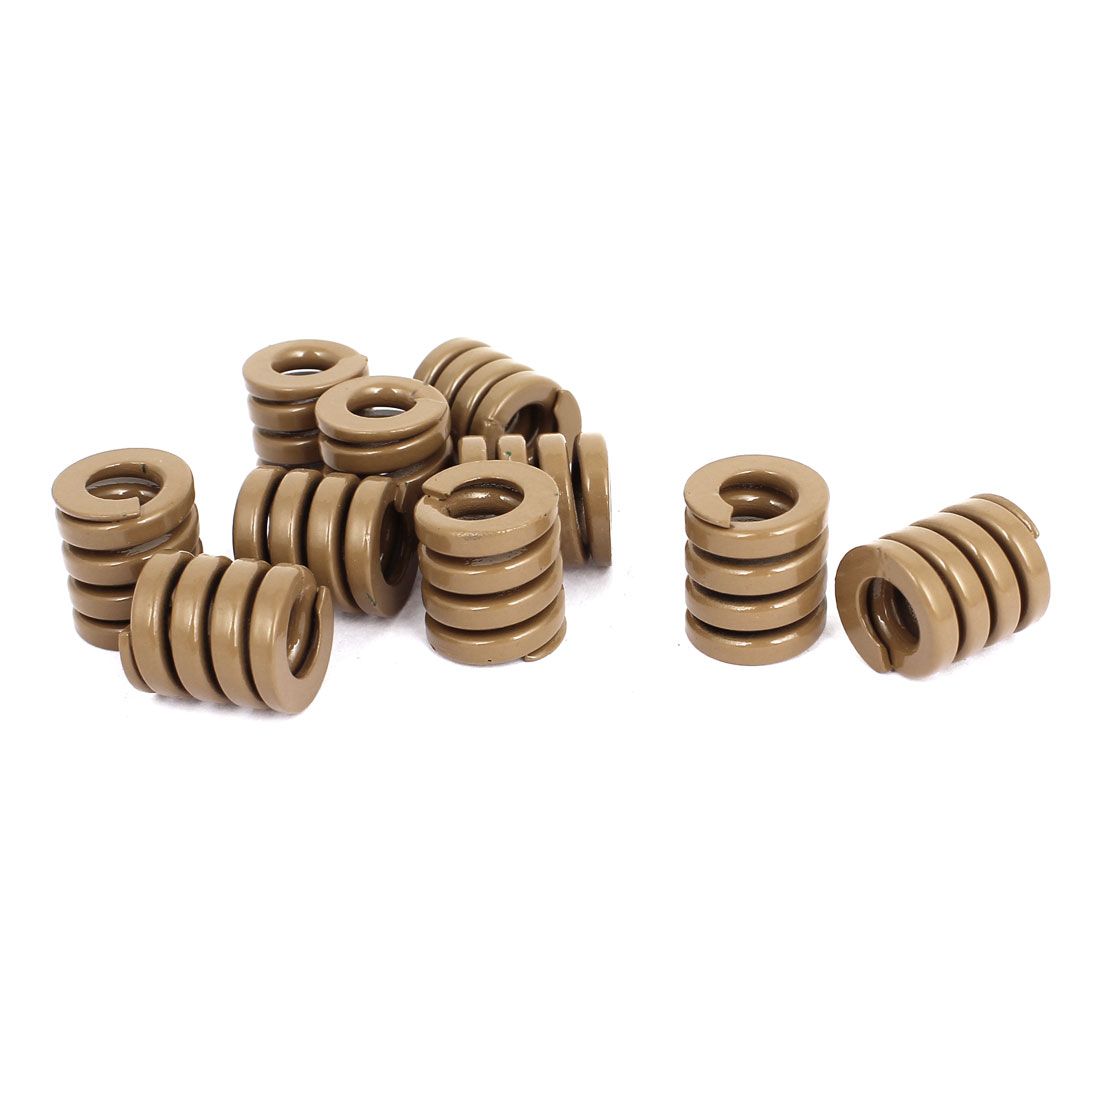 18mm OD 20mm Long Heavy Load Stamping Compression Mold Die Spring Brown 10pcs